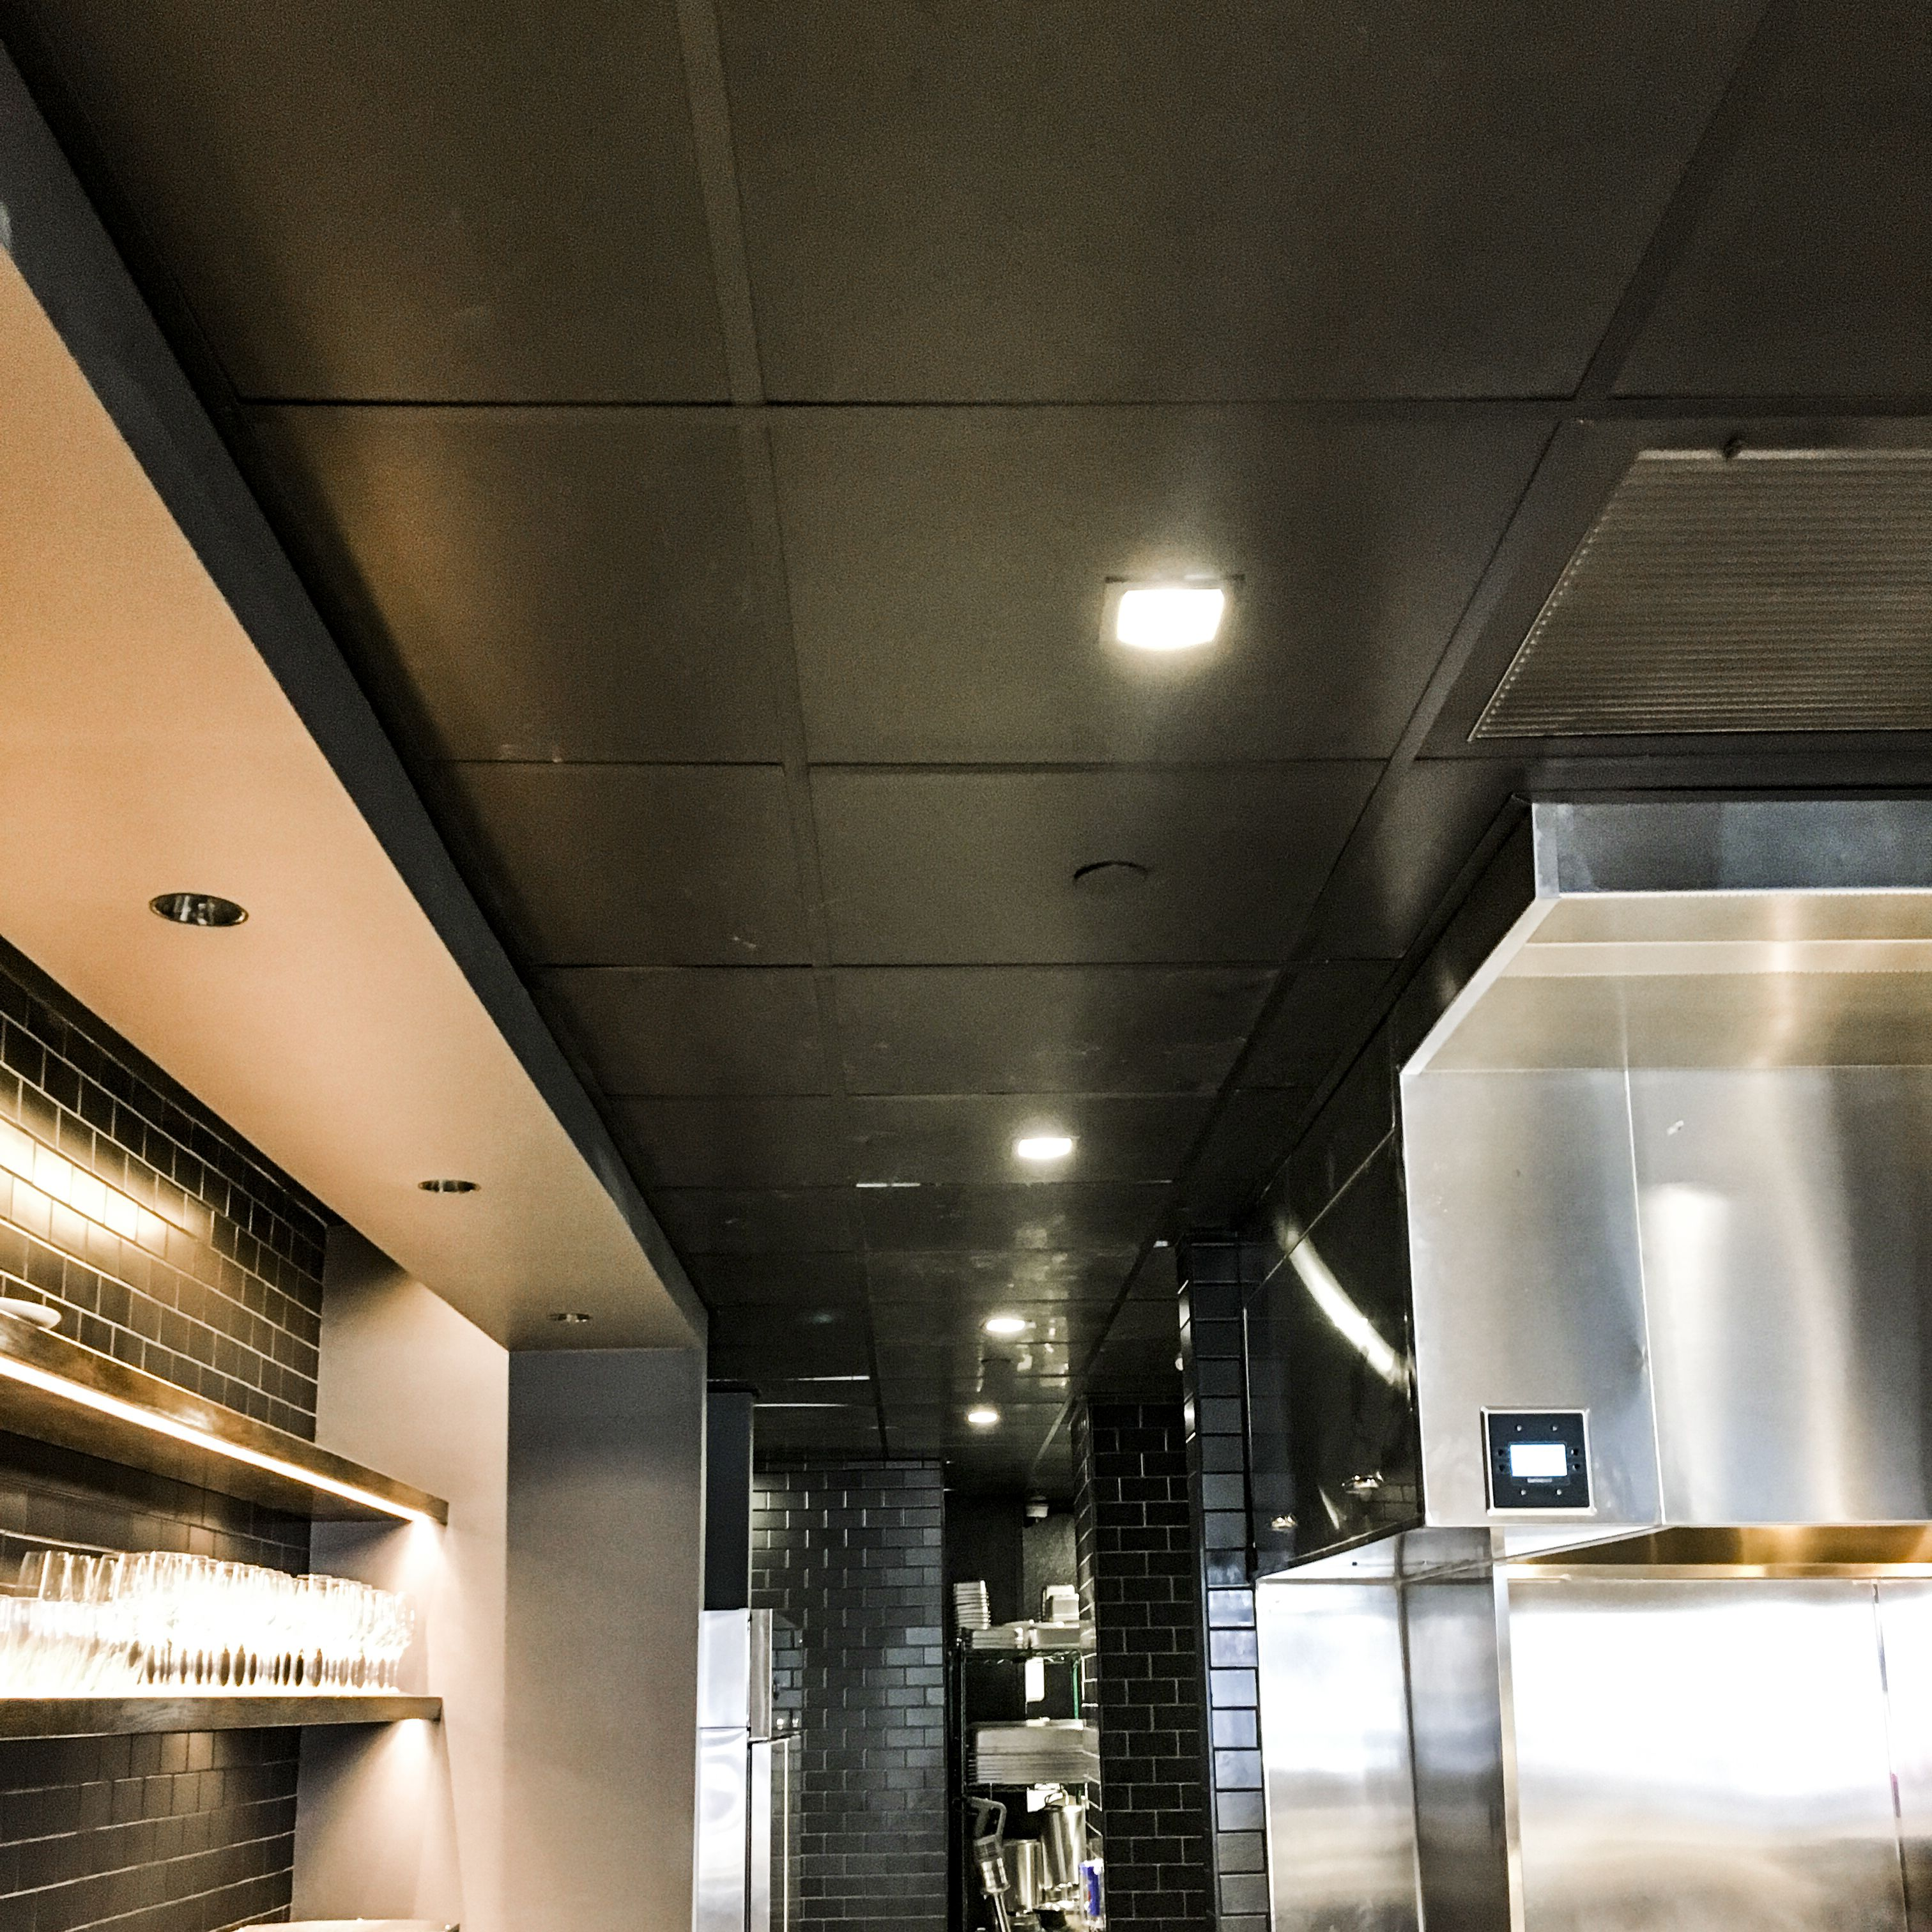 Looking For A Washable Ceiling Tile To Go Into Your Commercial Kitchen Look No Further We Have The Duraclean Smooth Tiles Available In Both White